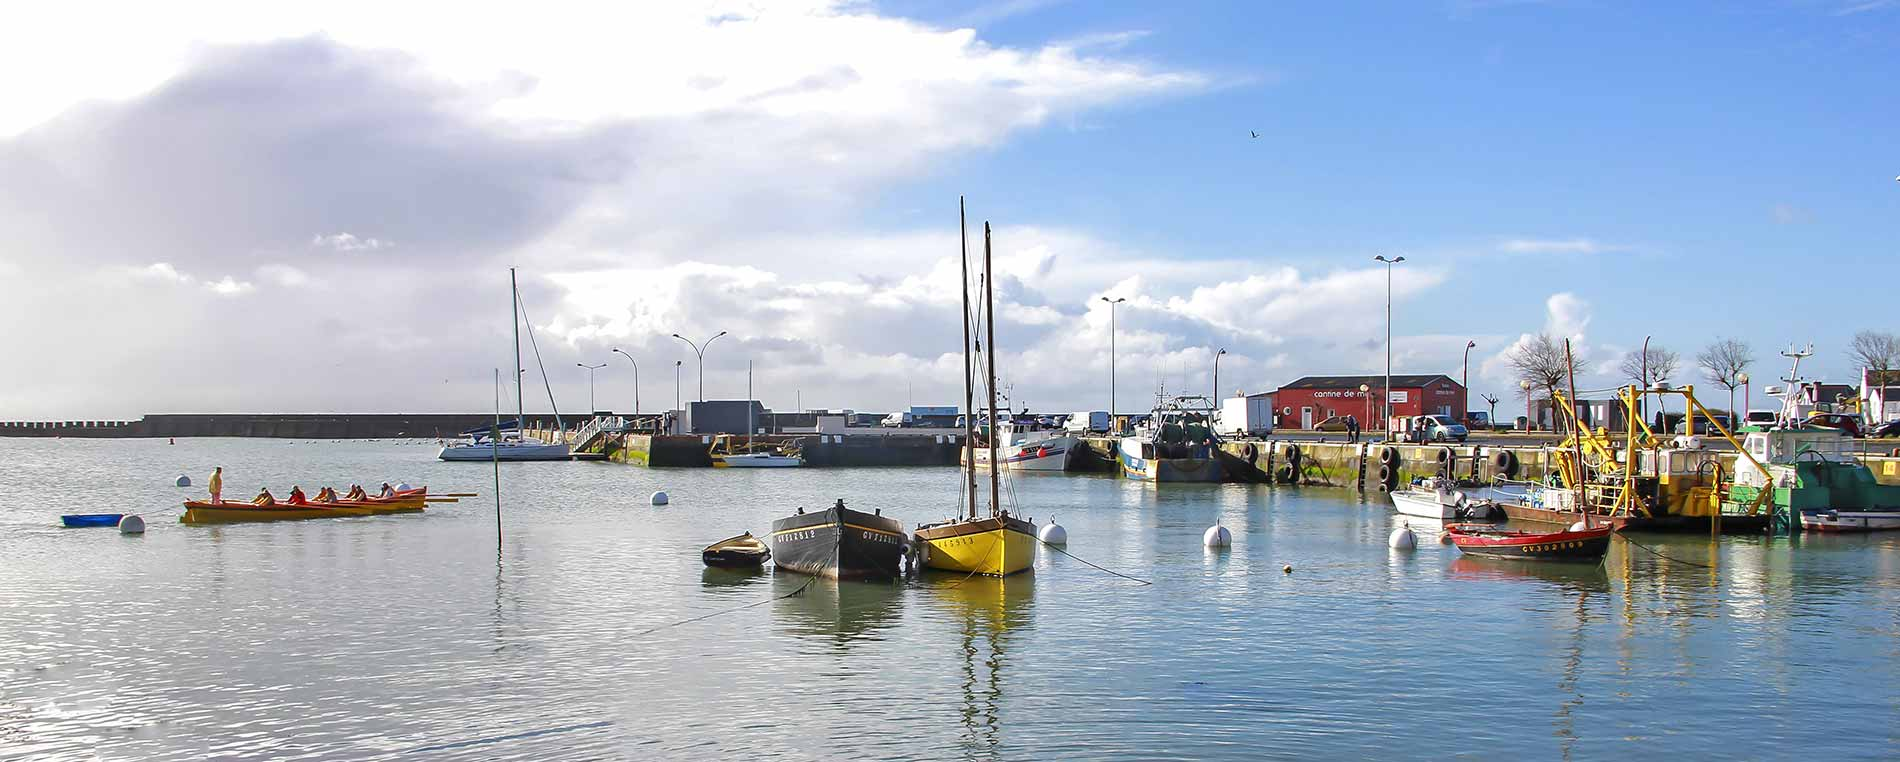 Le port de Lesconil